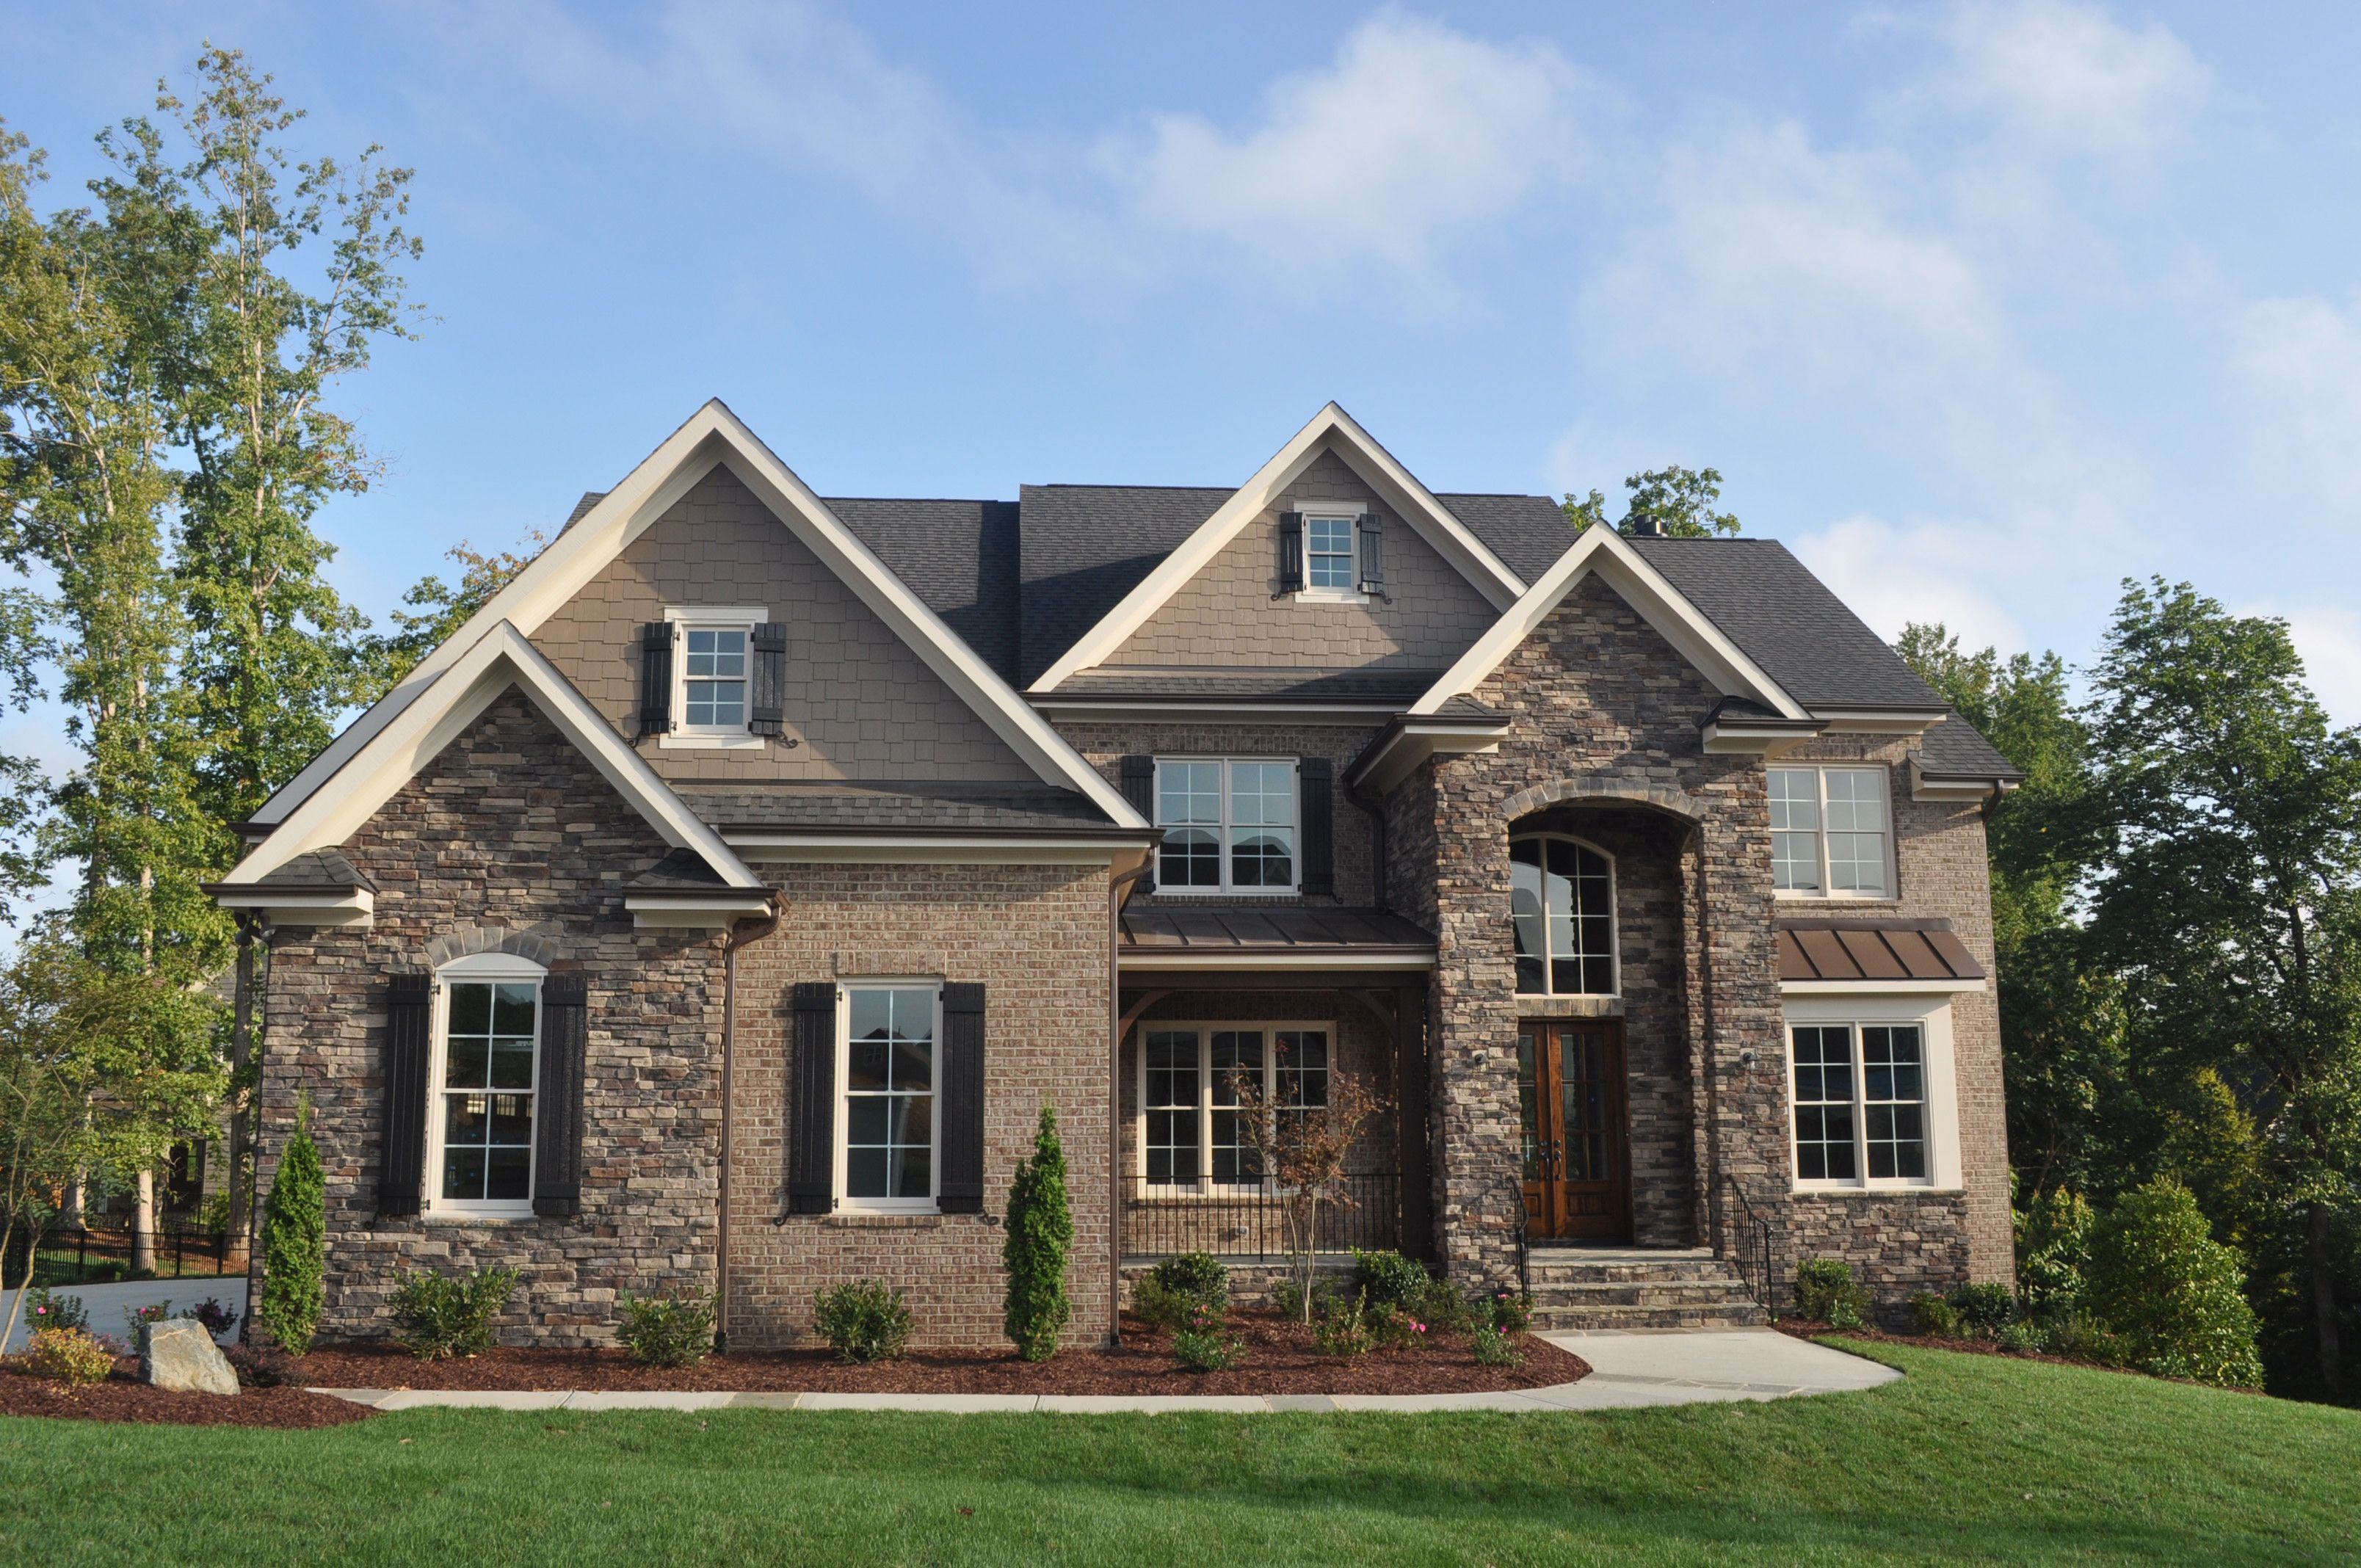 Brick And Stone Exterior With A Little Siding Pinterest Stone Exterior Bricks And Stone